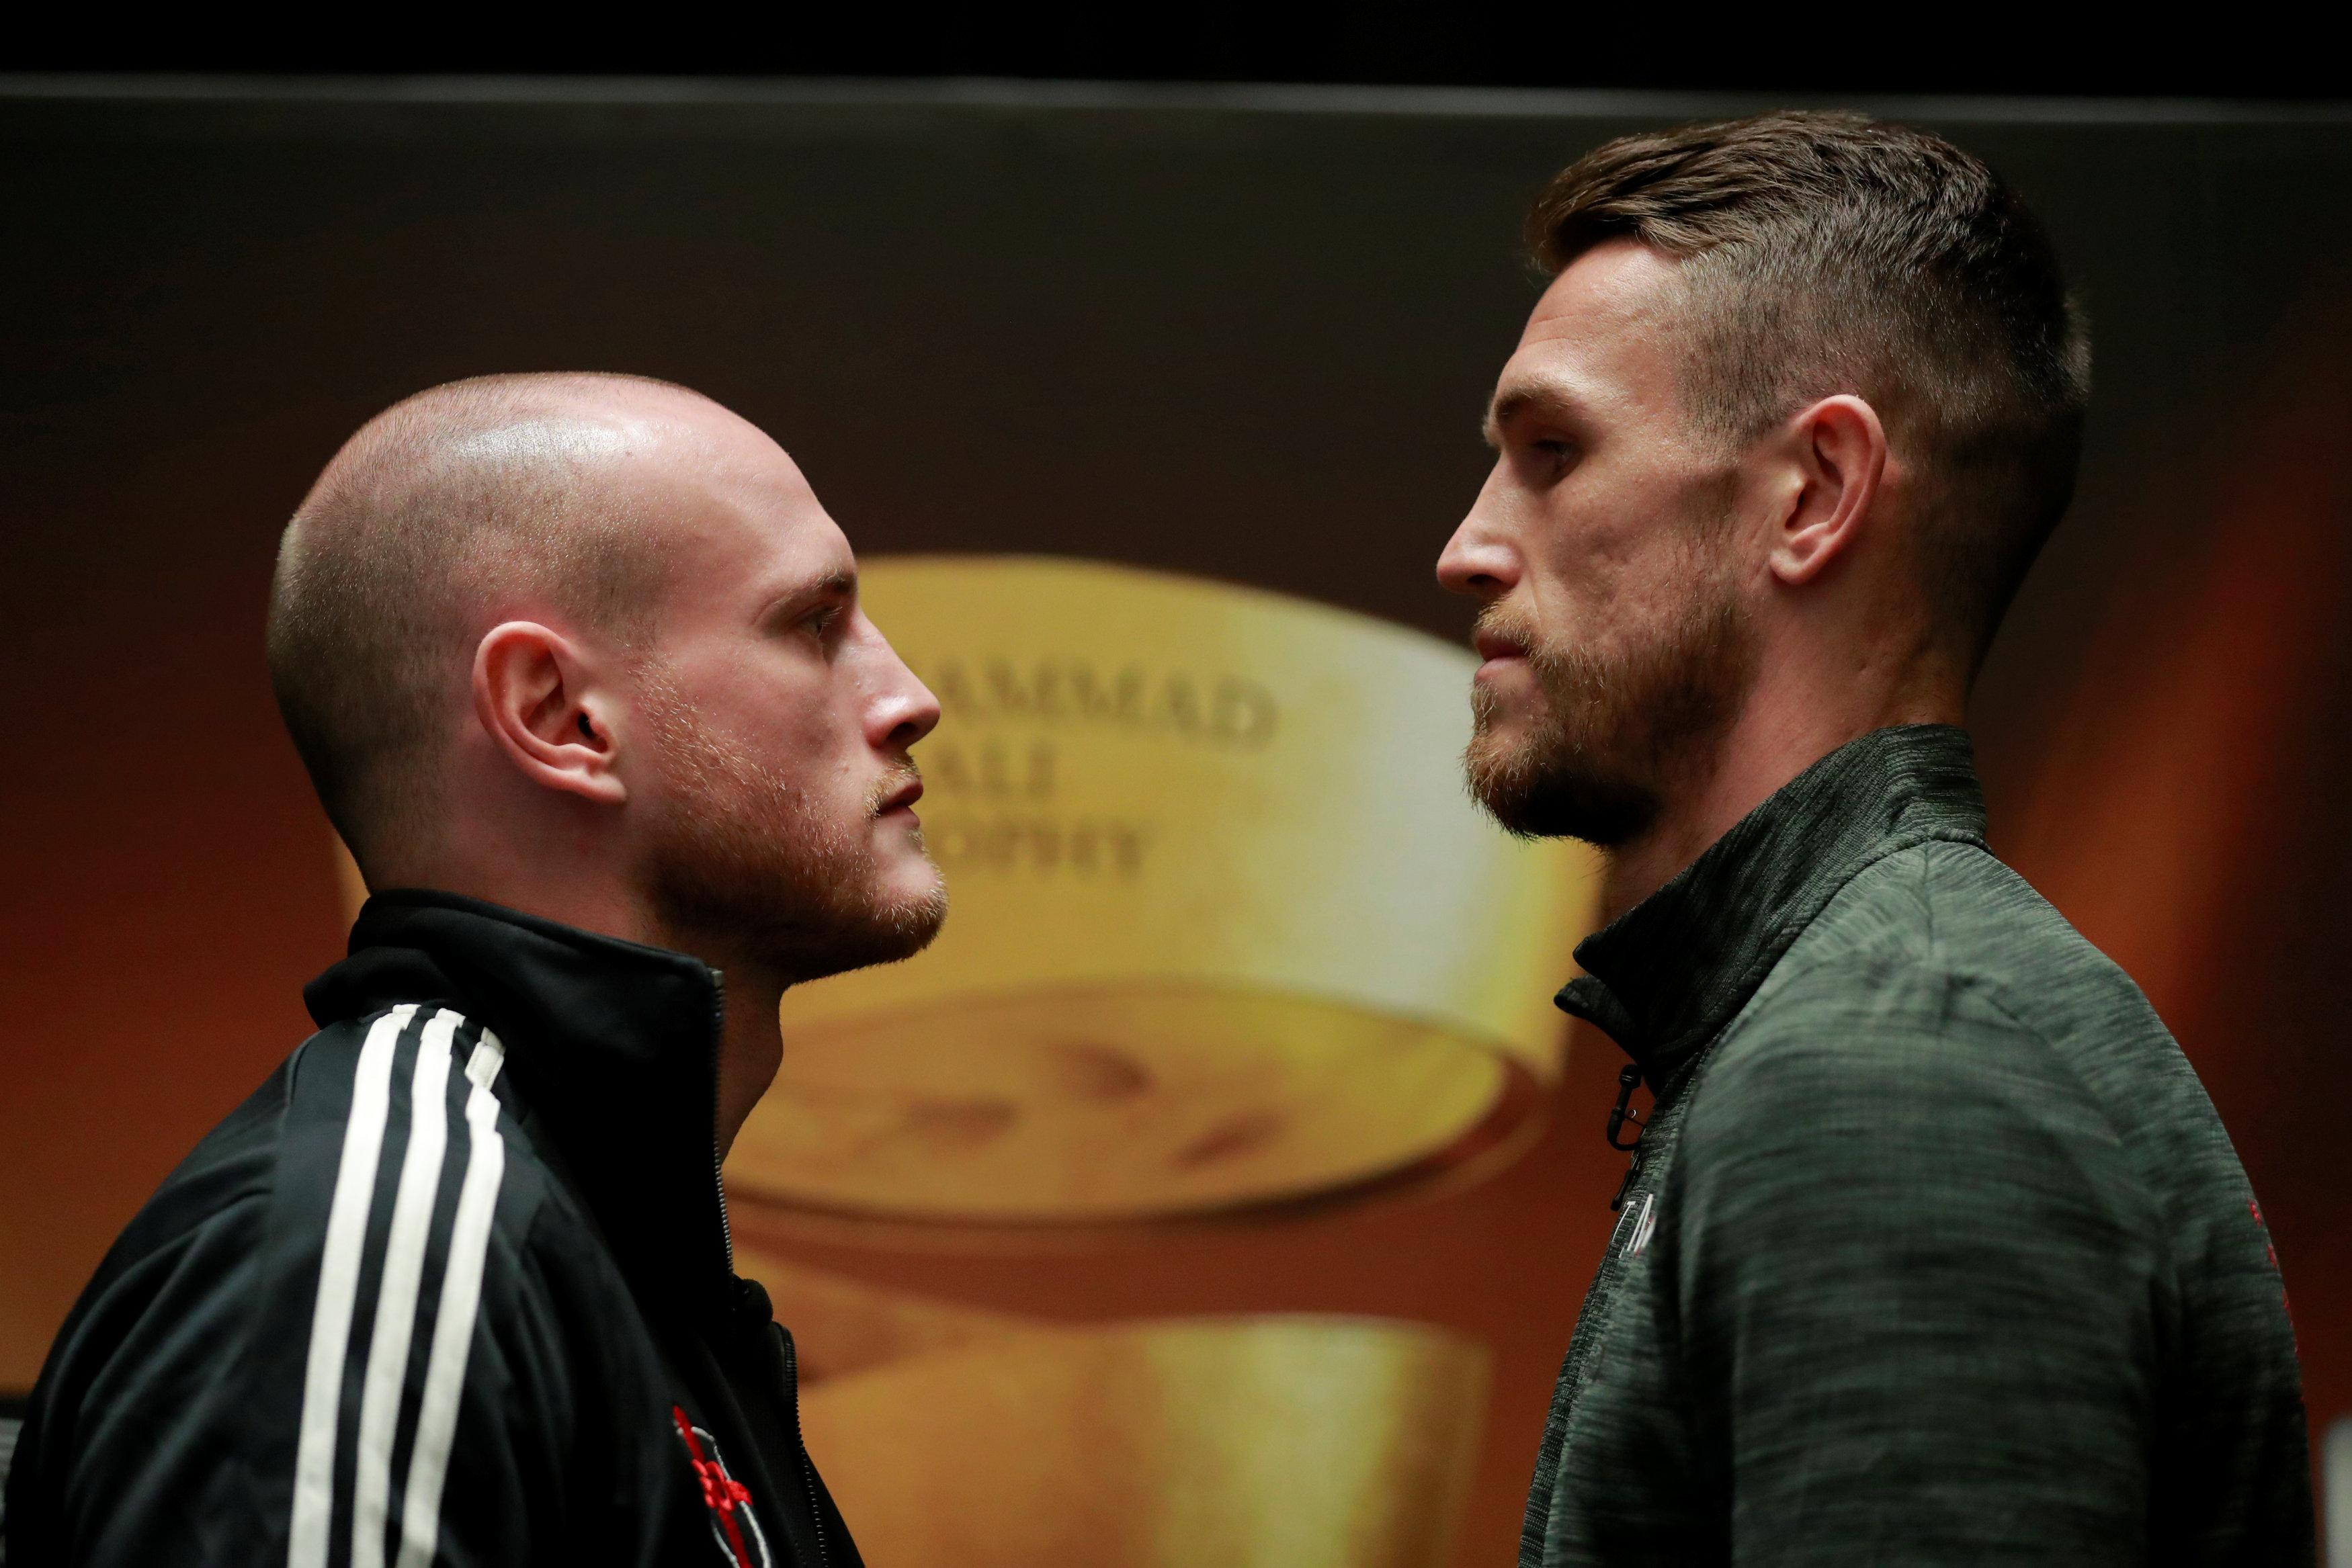 Groves was looking to inflict a first professional defeat on Liverpudlian Smith